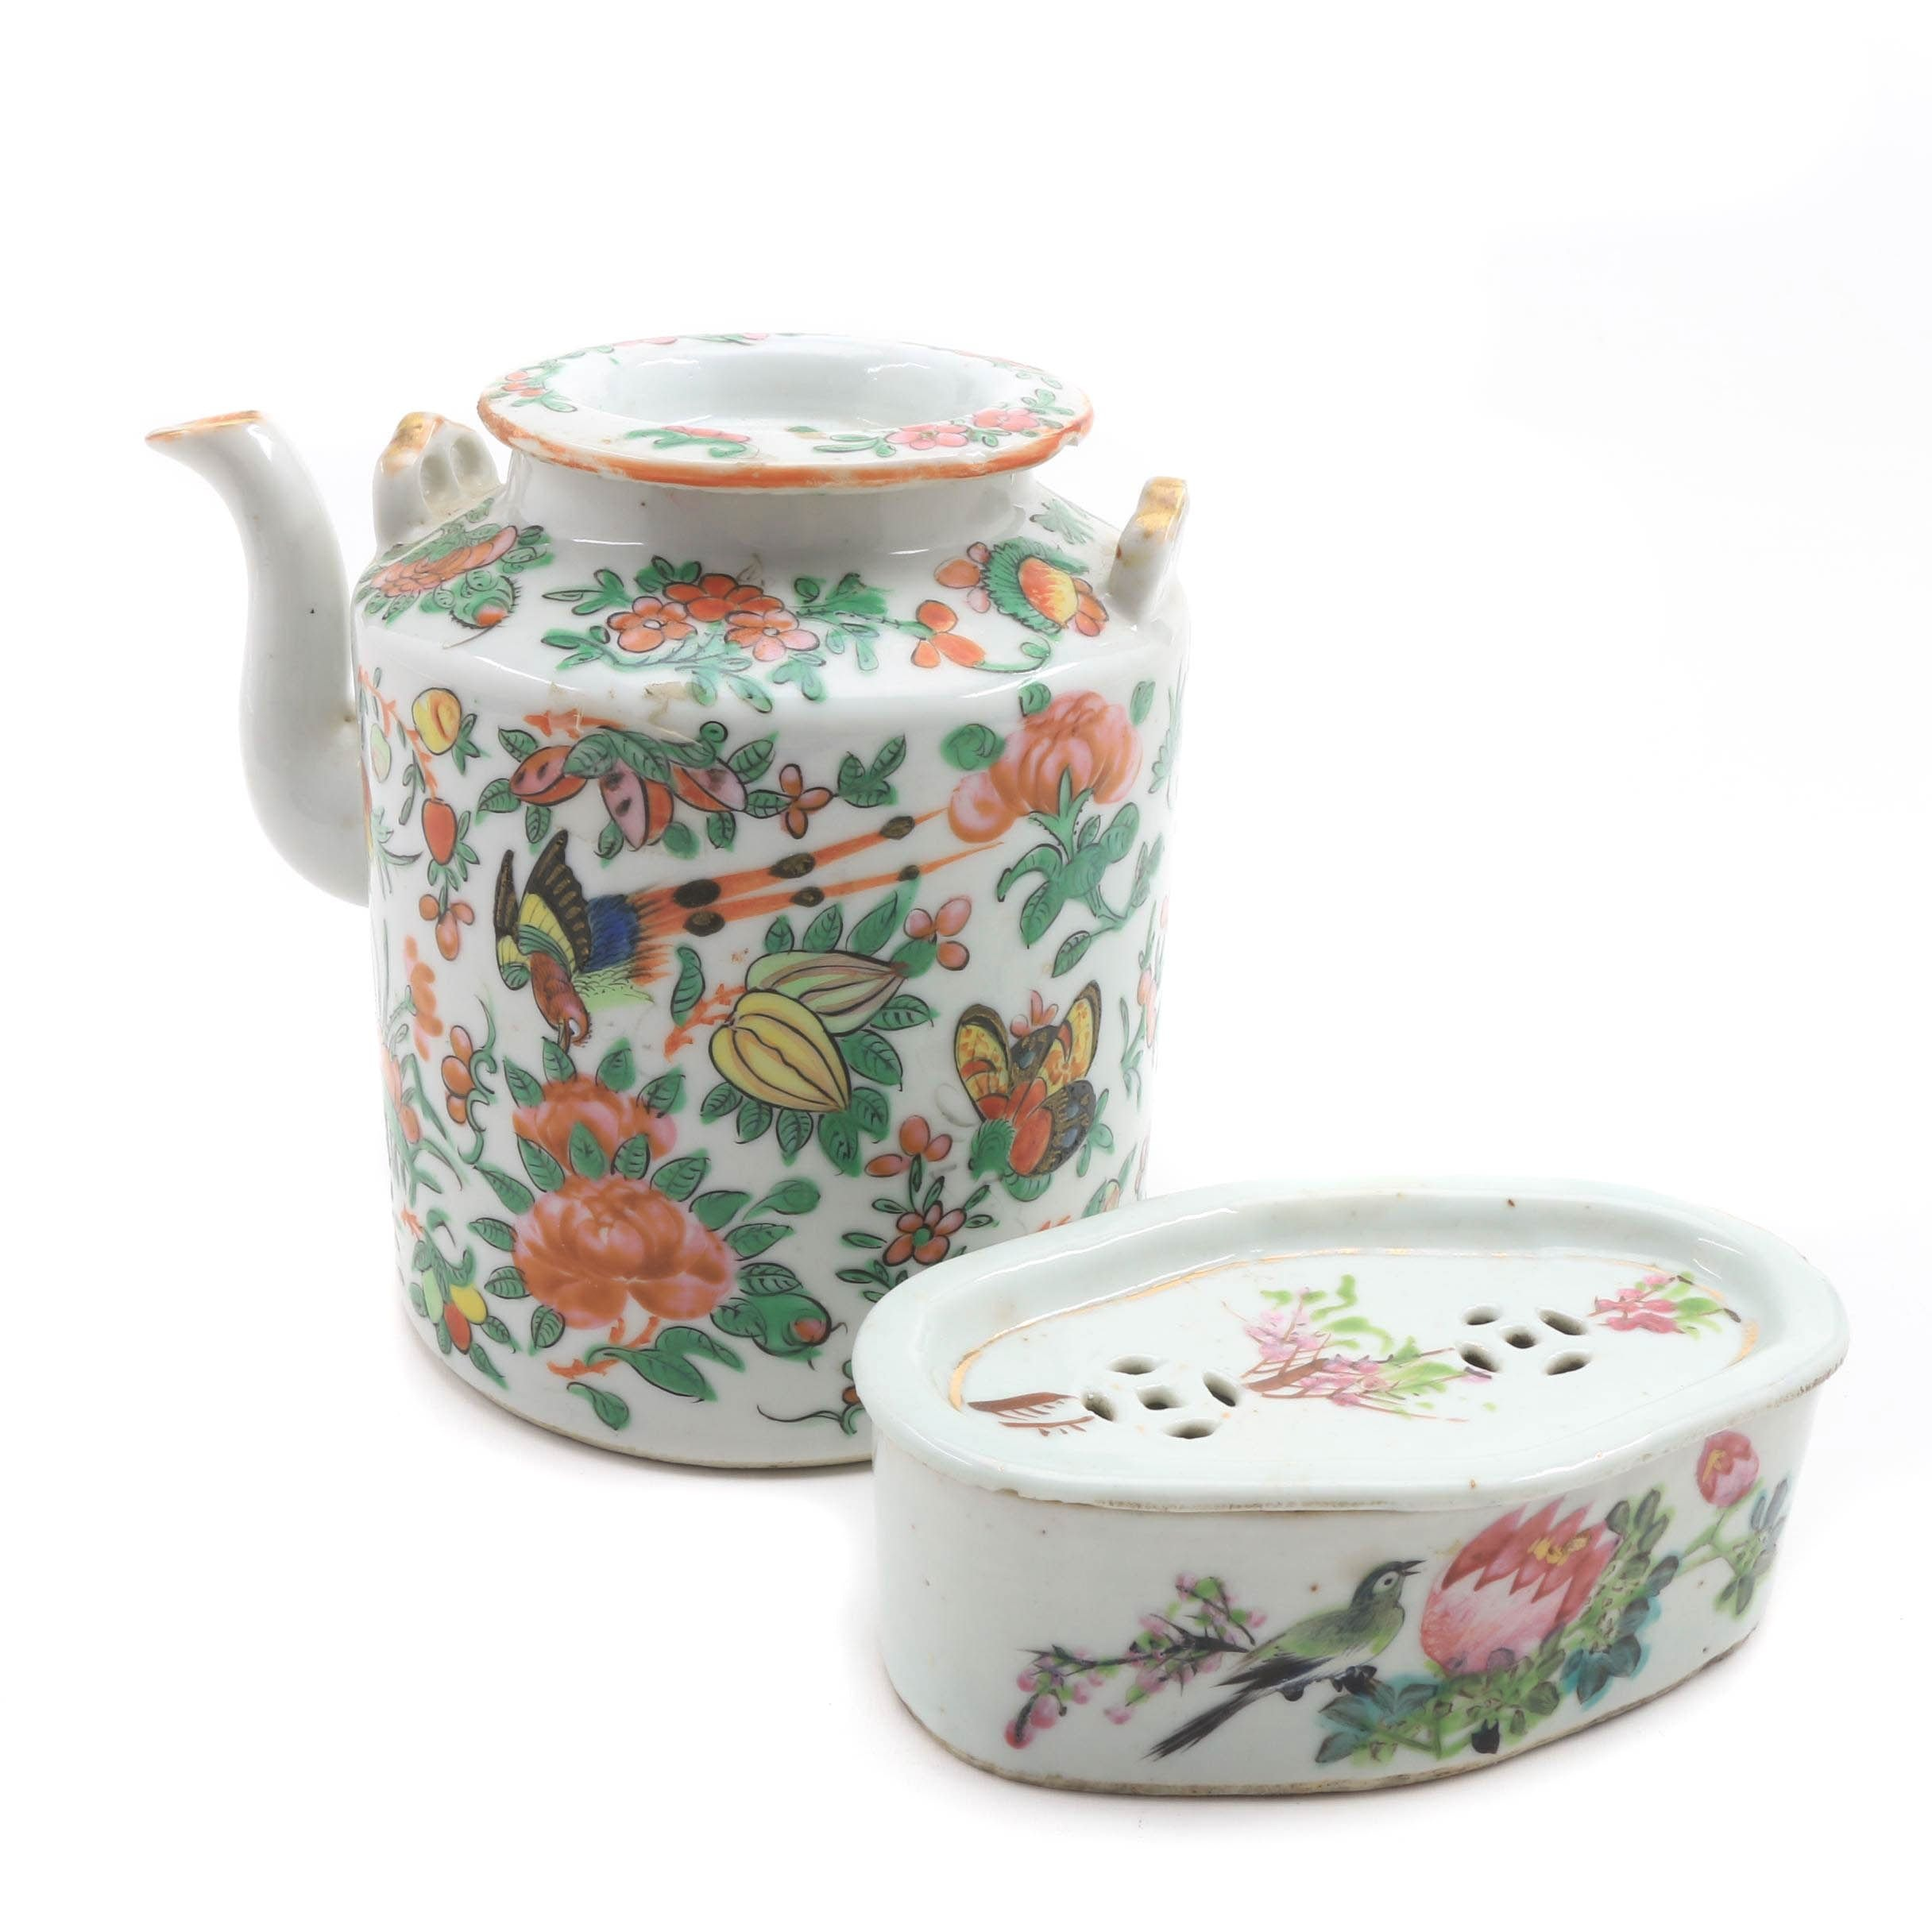 Chinese Famille Rose Porcelain Teapot and Porcelain Soap Dish